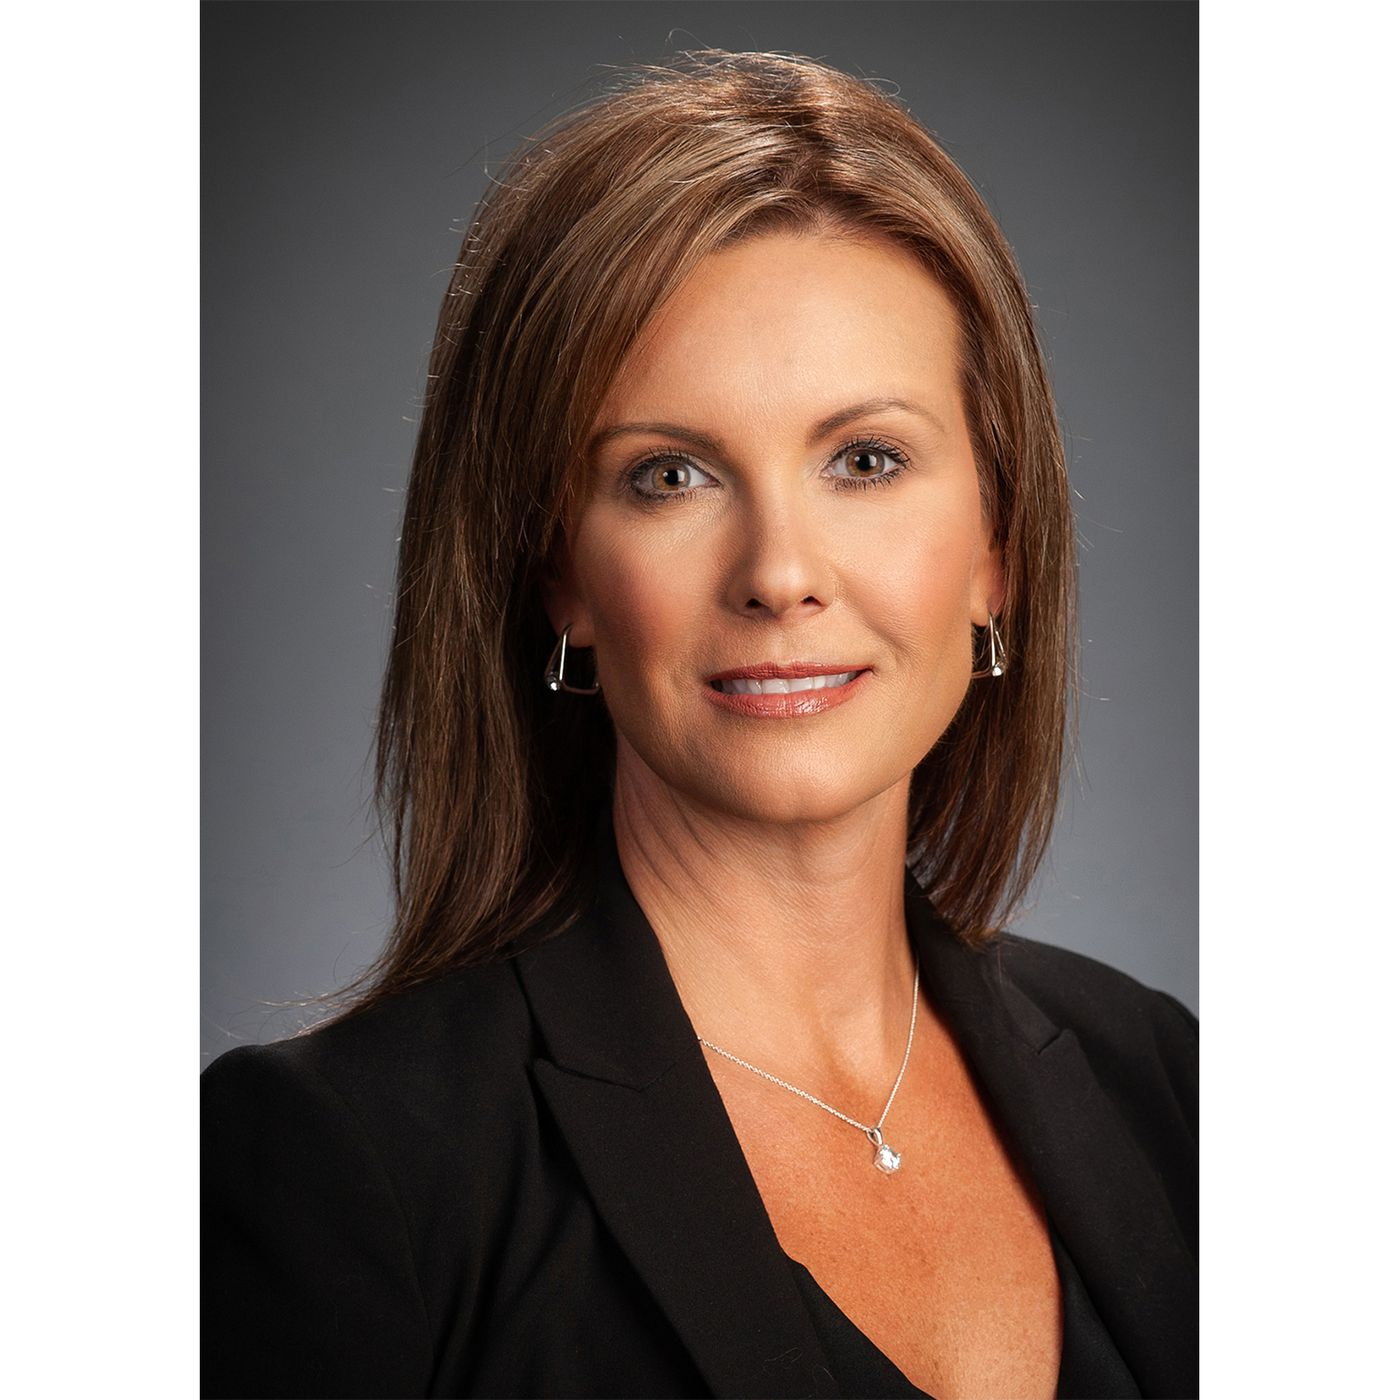 District 49 School Back In Session After Christmas 2020 Laura Curtis: Illinois House 49th District Republican nominee